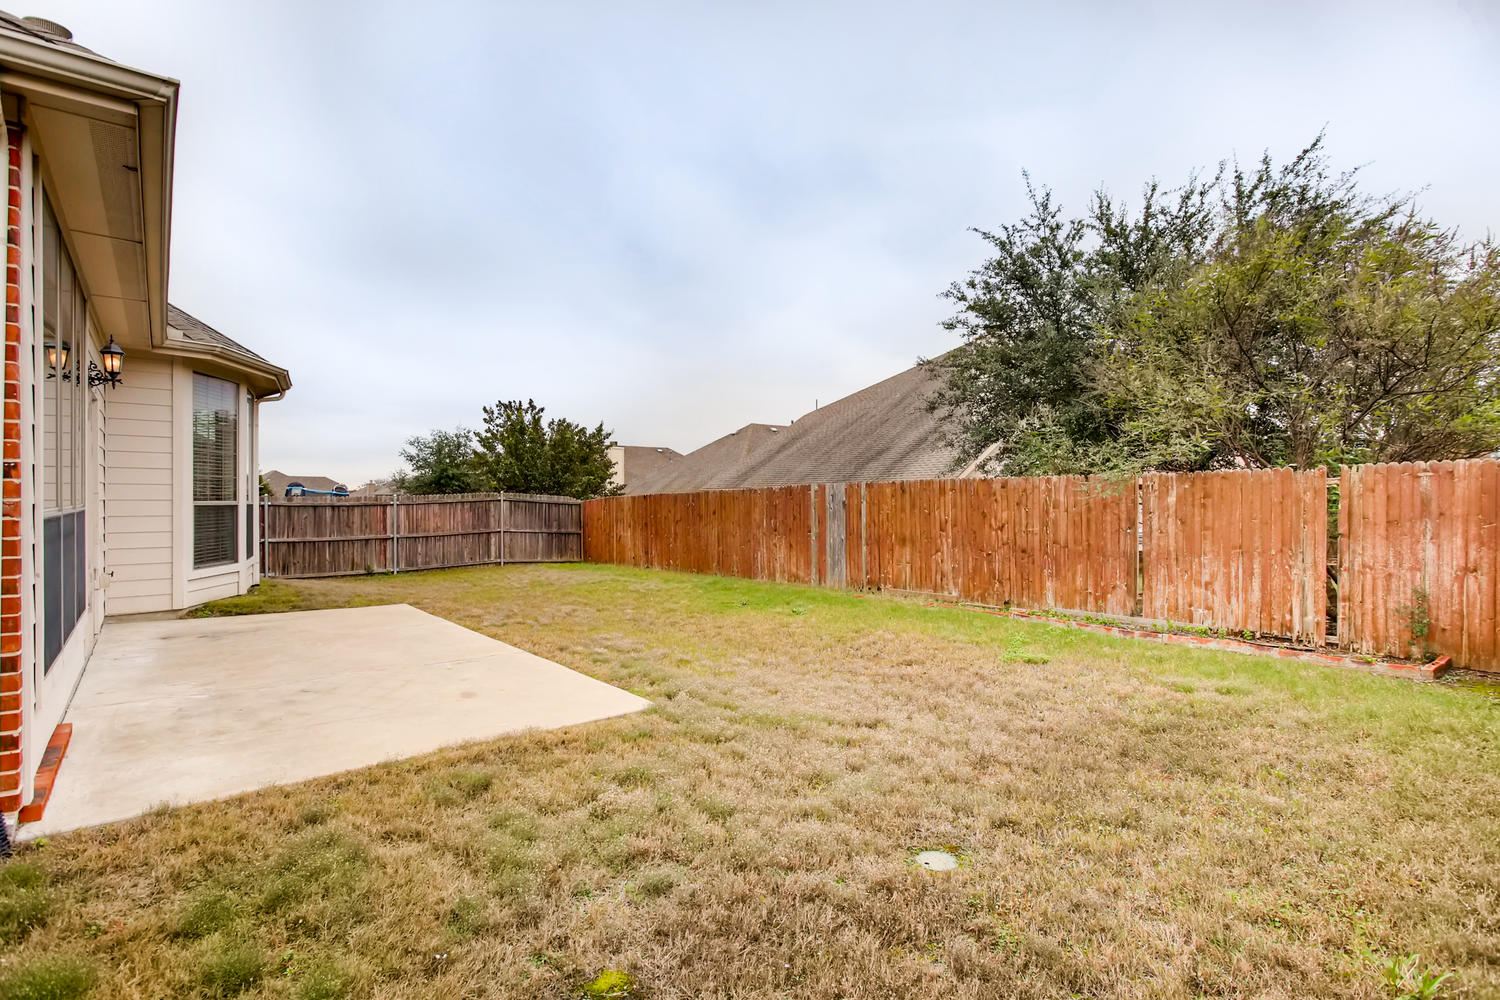 Photo of 817 Hardwood Dr, McKinney, TX, 75069